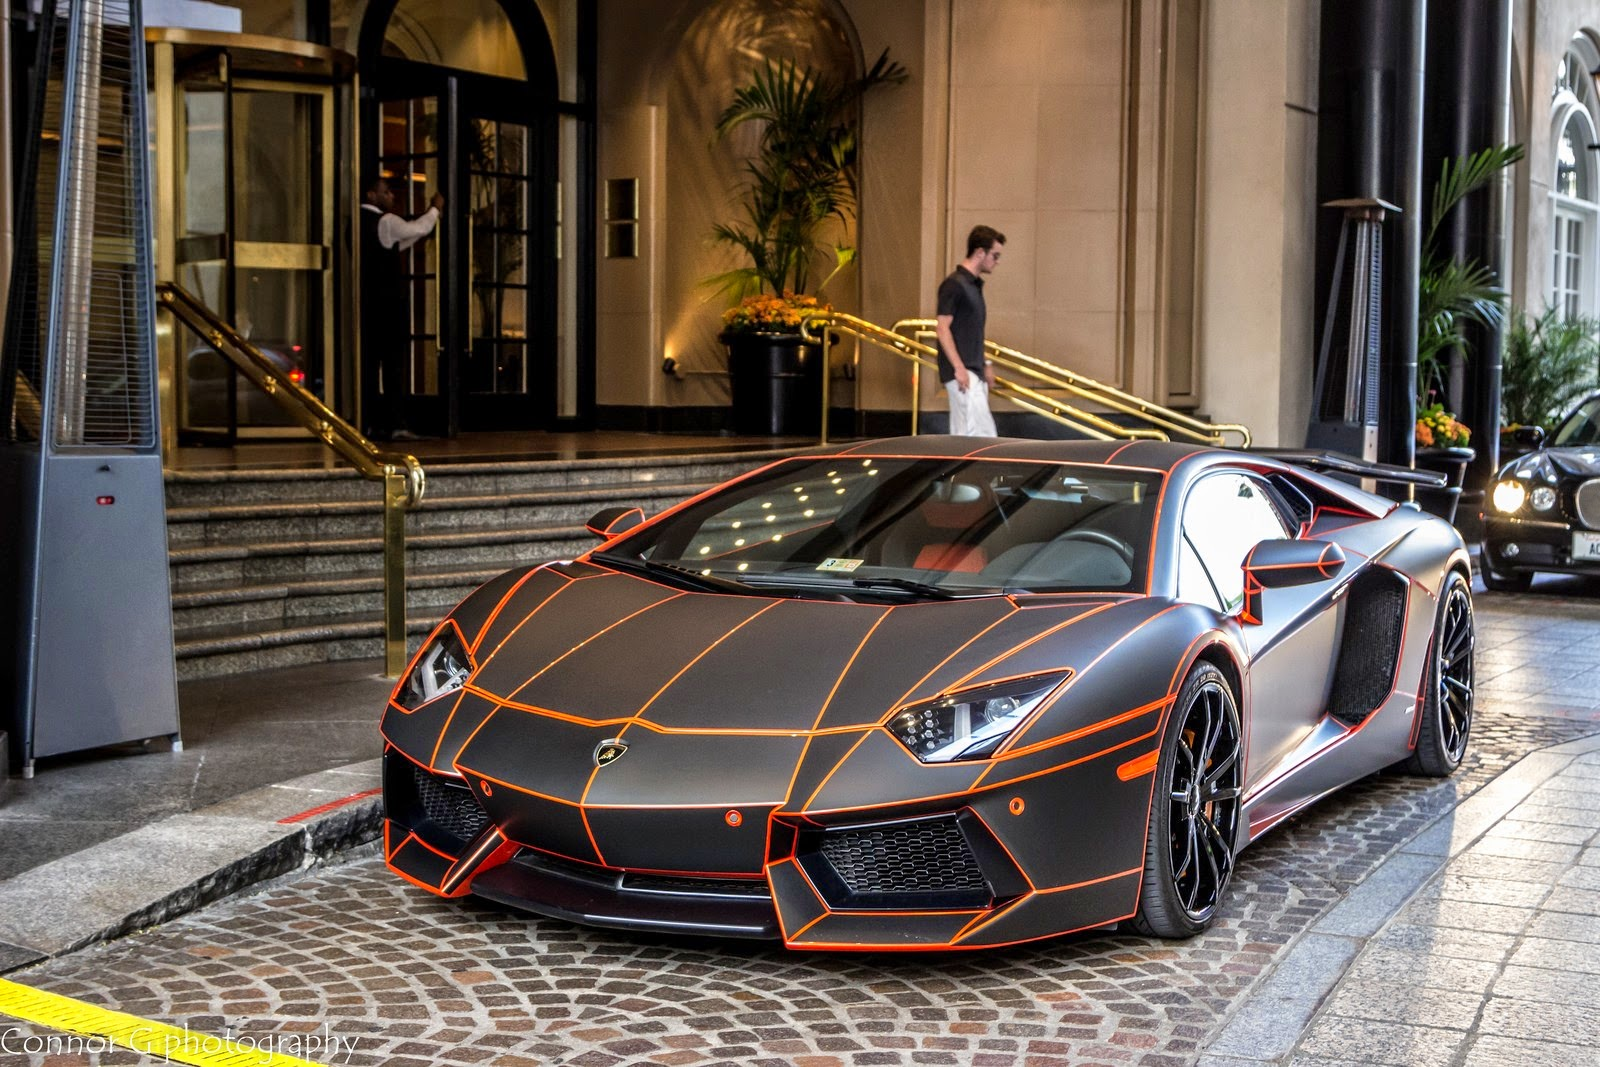 Lamborghini Aventador Black Orange Tron at 99 Photos ...